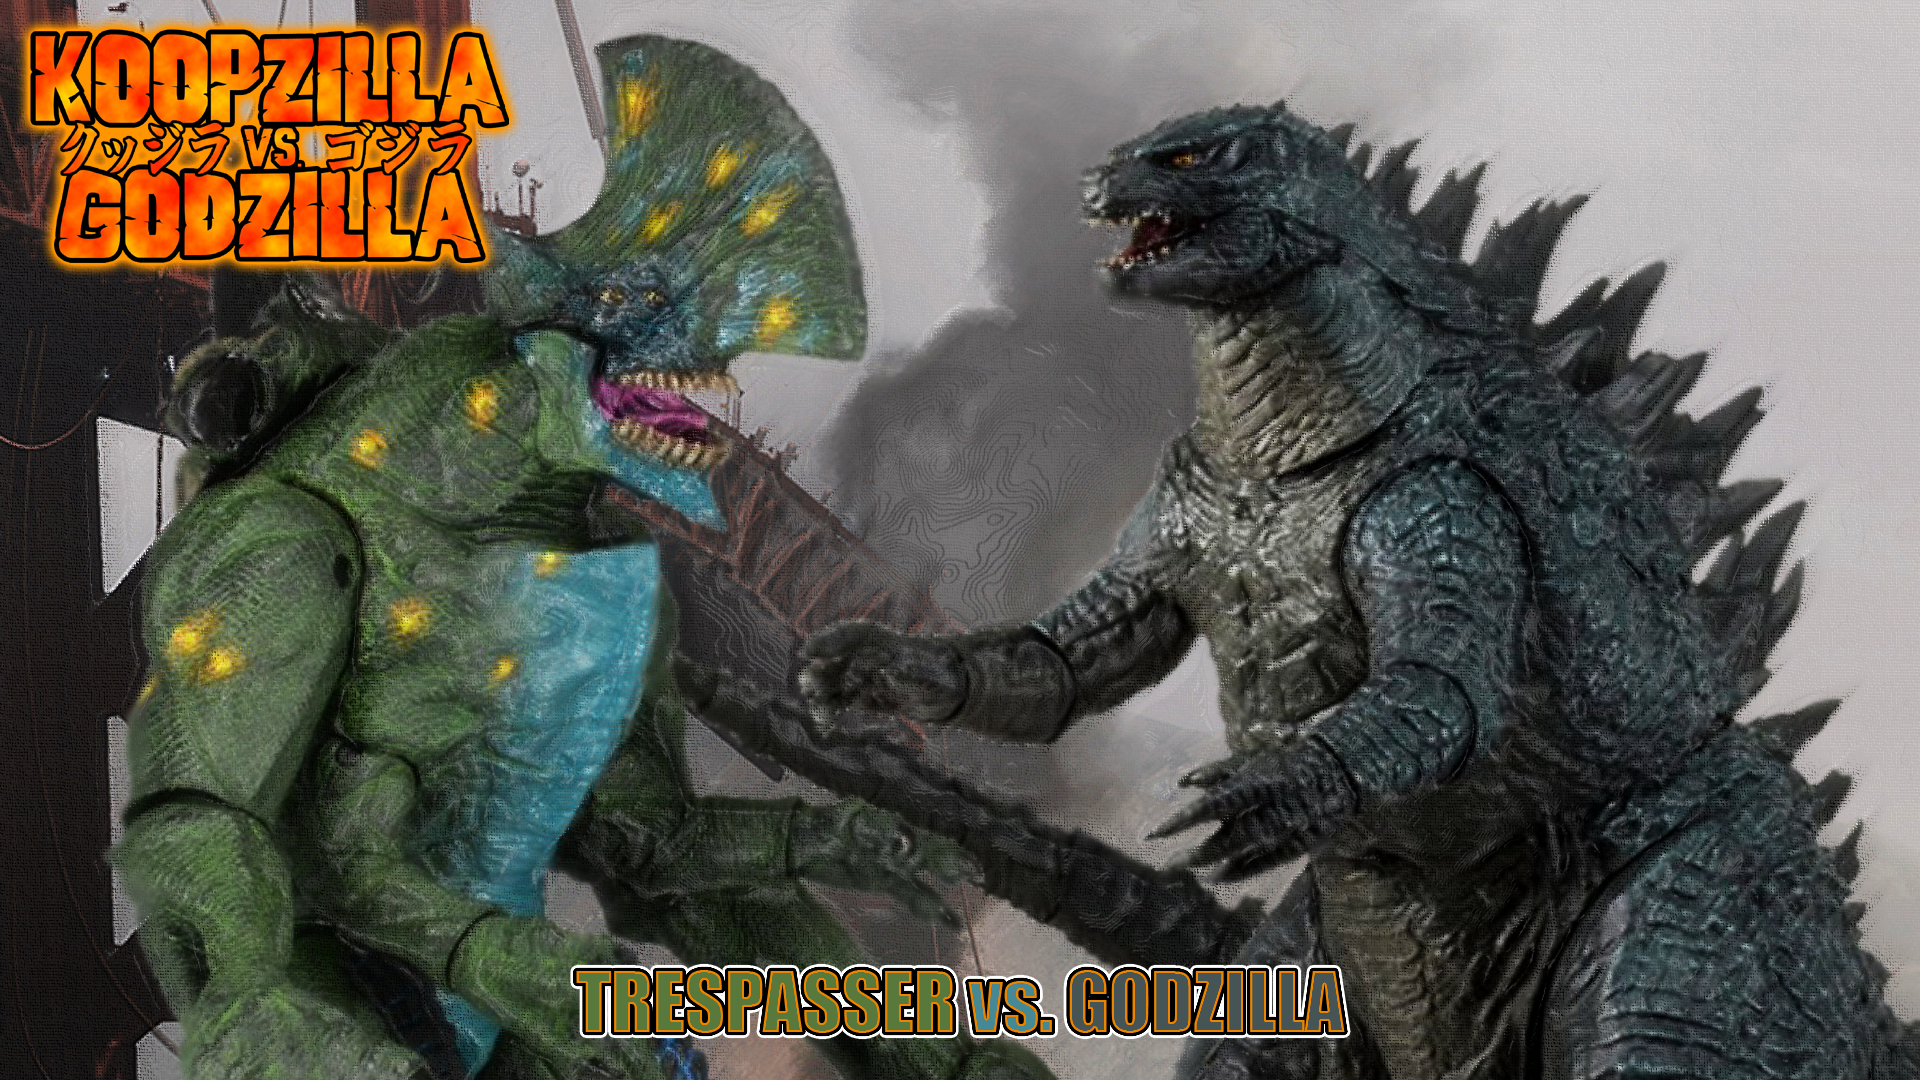 Godzilla Vs Kaiju Pacific Rim | www.imgkid.com - The Image ... Pacific Rim Vs Godzilla